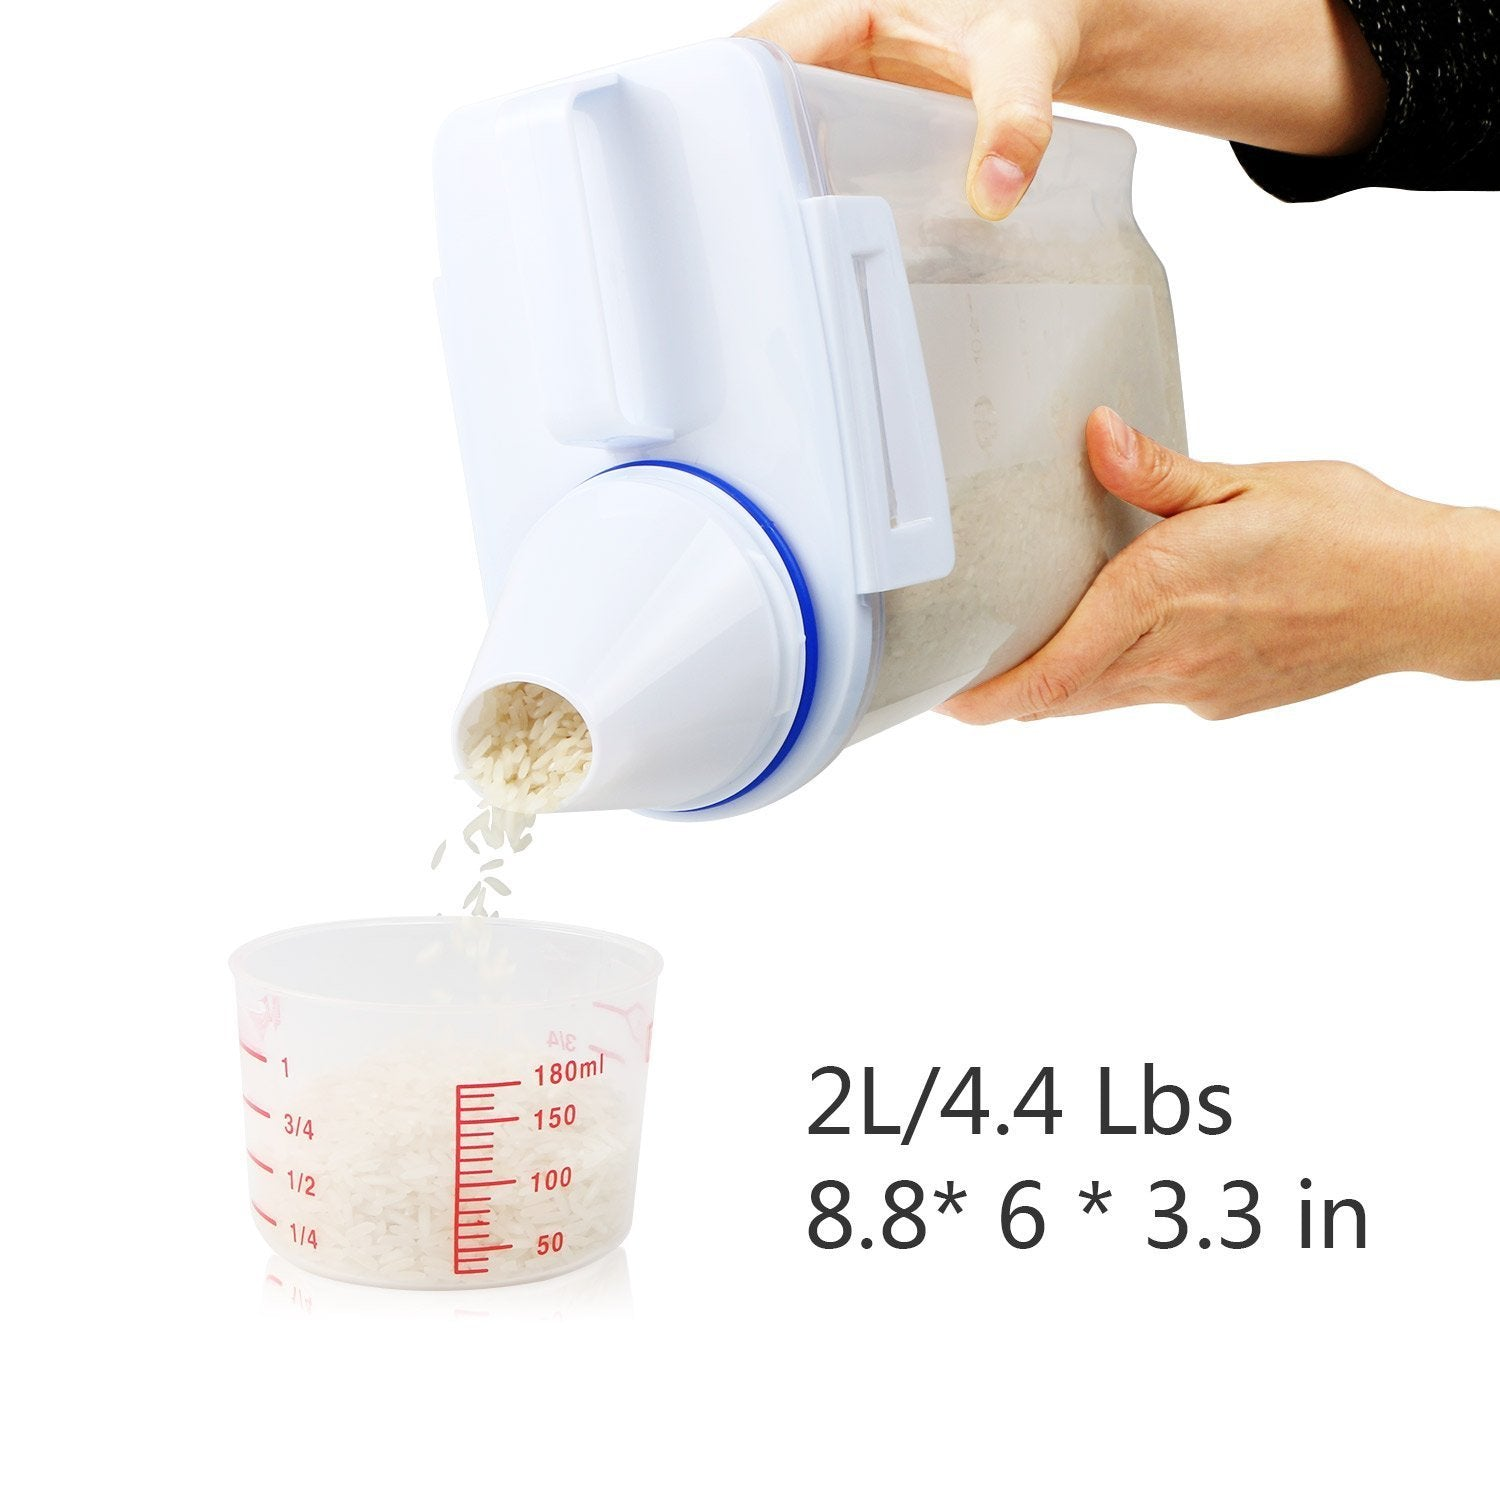 Dry Food Keeper With Pour Spout and Measuring Cup - creative watcher